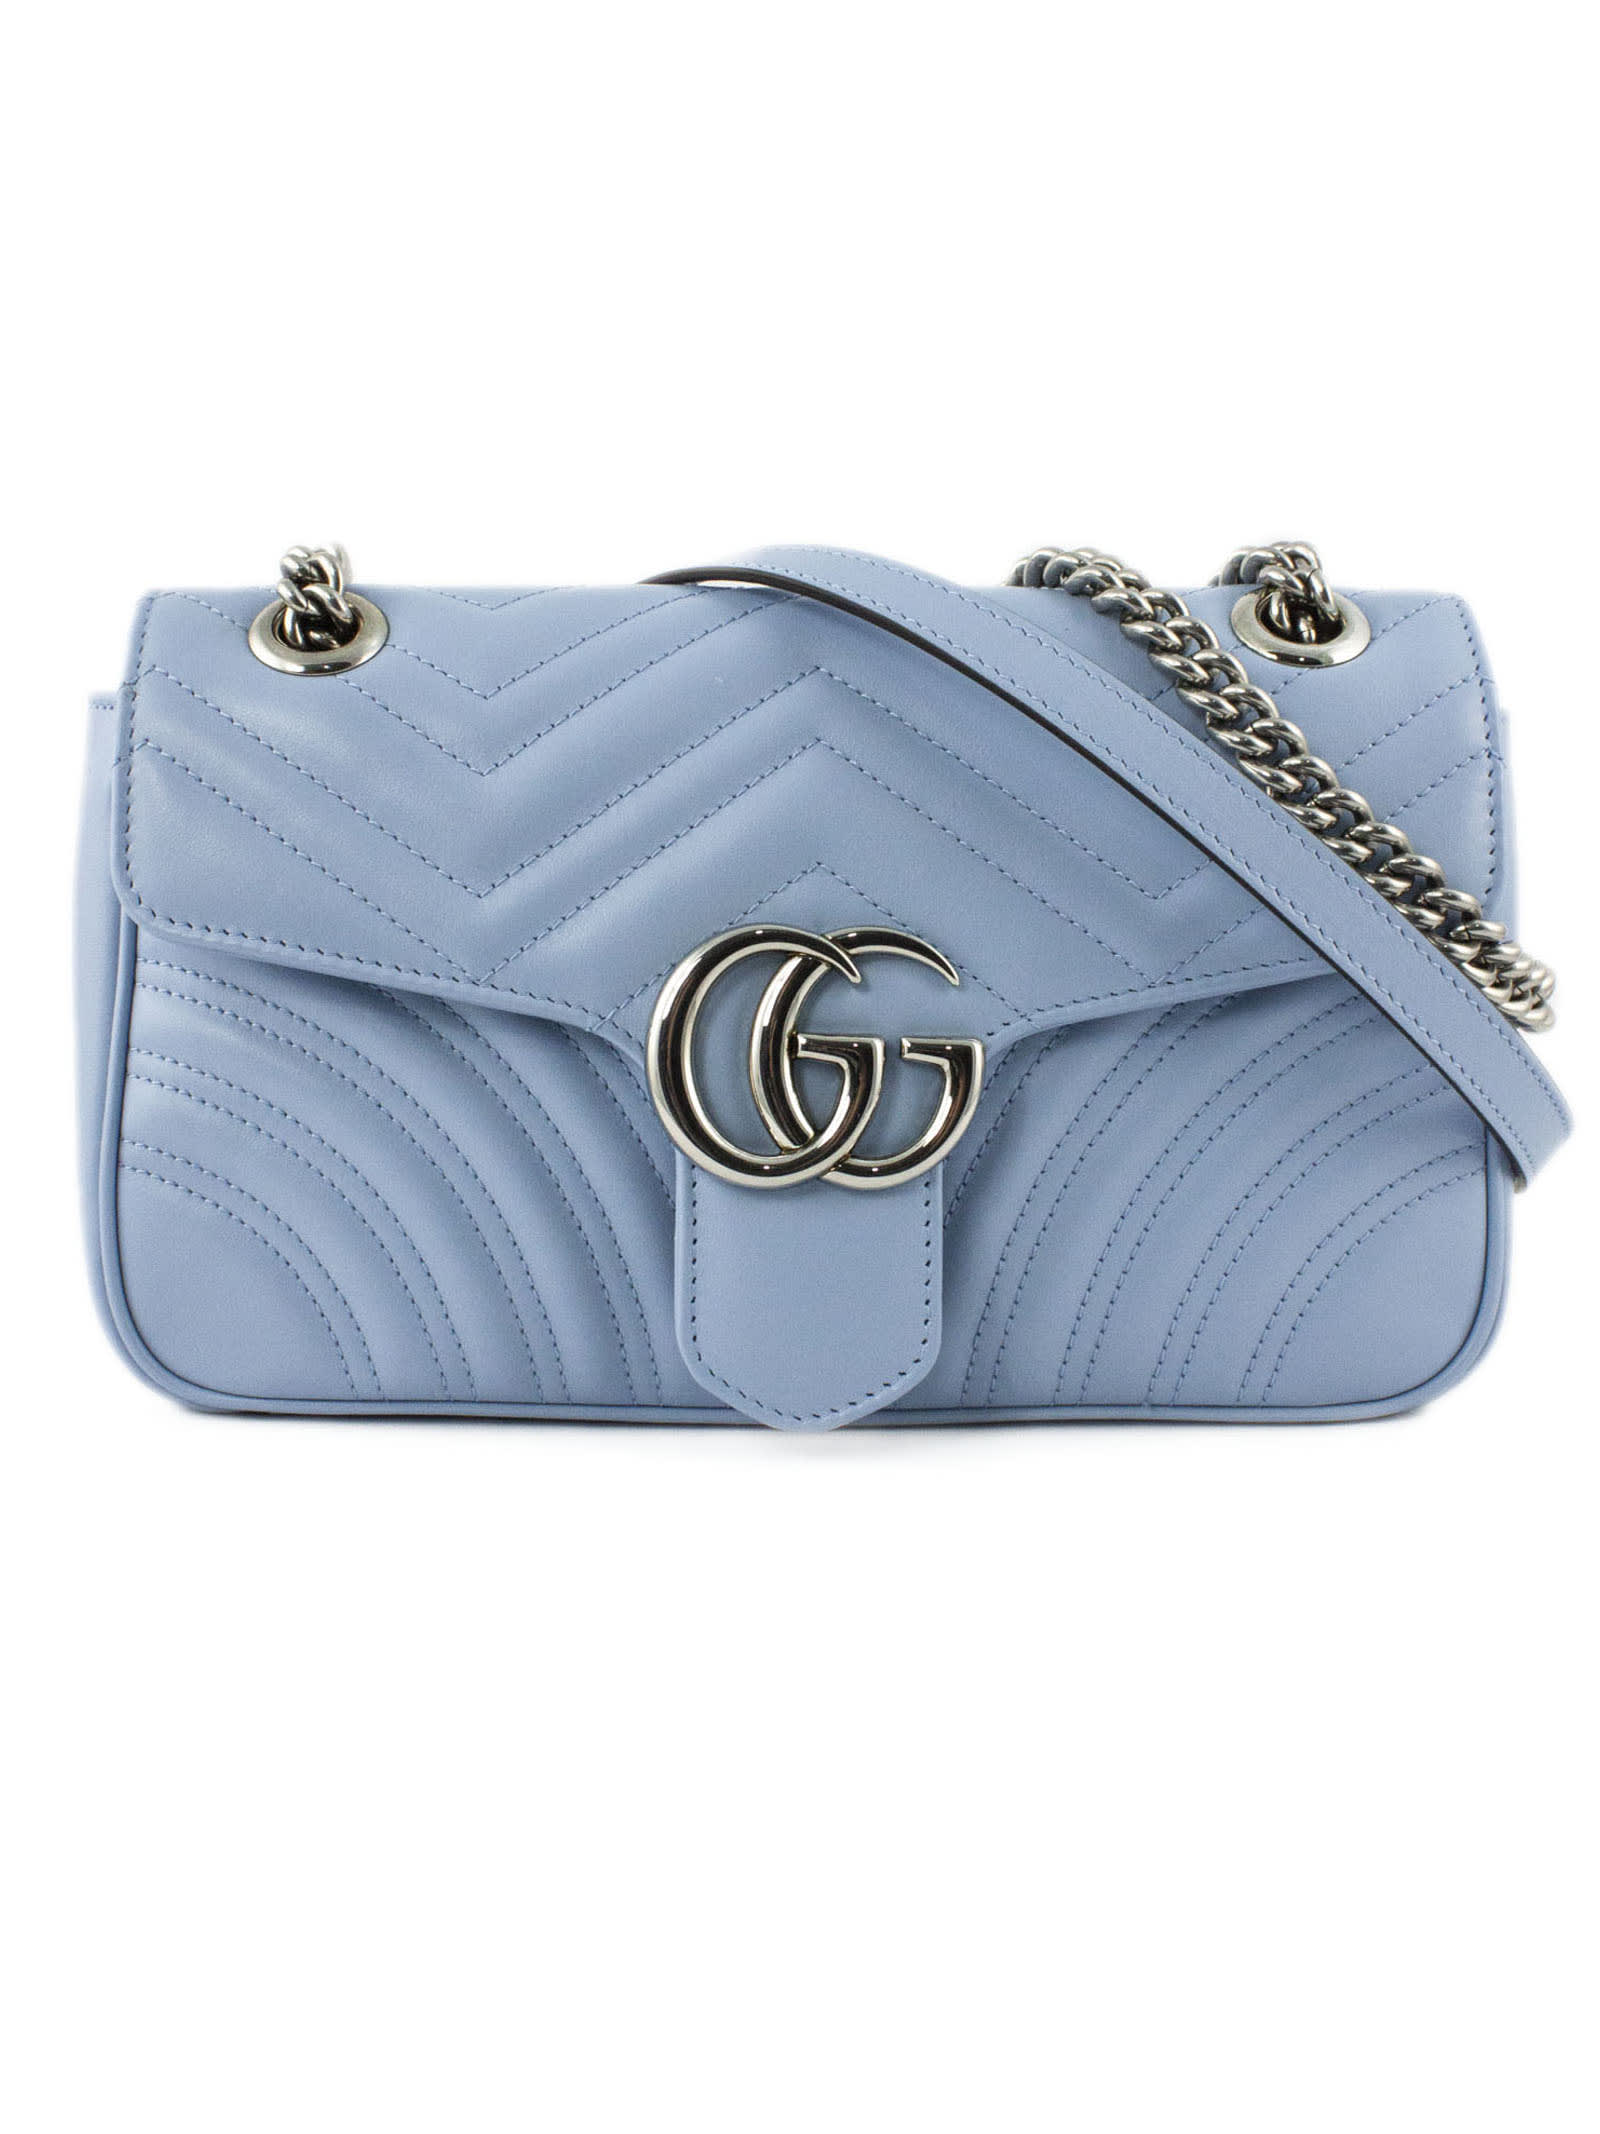 Gucci Gg Marmont Small Shoulder Bag